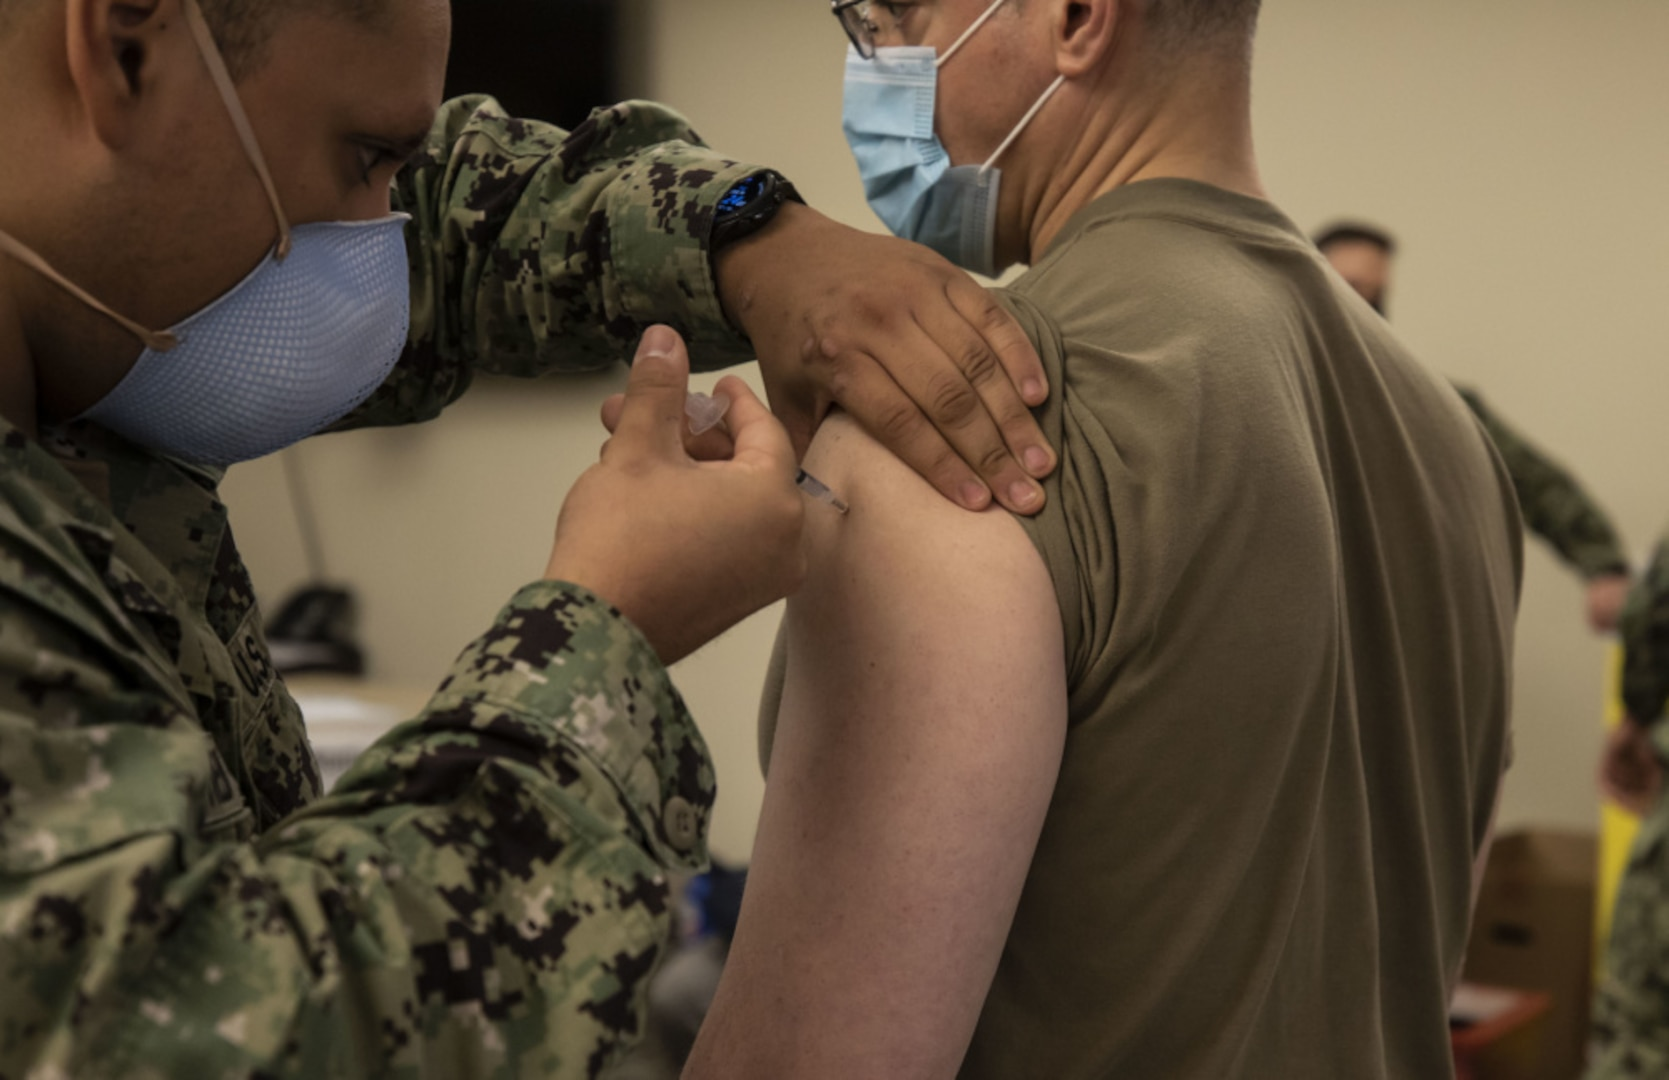 U.S. Army Lt. Col. Charles Calio, the public affairs officer deployed with Task Force 46, headquartered in Lansing, Mich., receives the Pfizer COVID-19 vaccine at the Navy Hospital at Camp Pendleton in Oceanside, California.